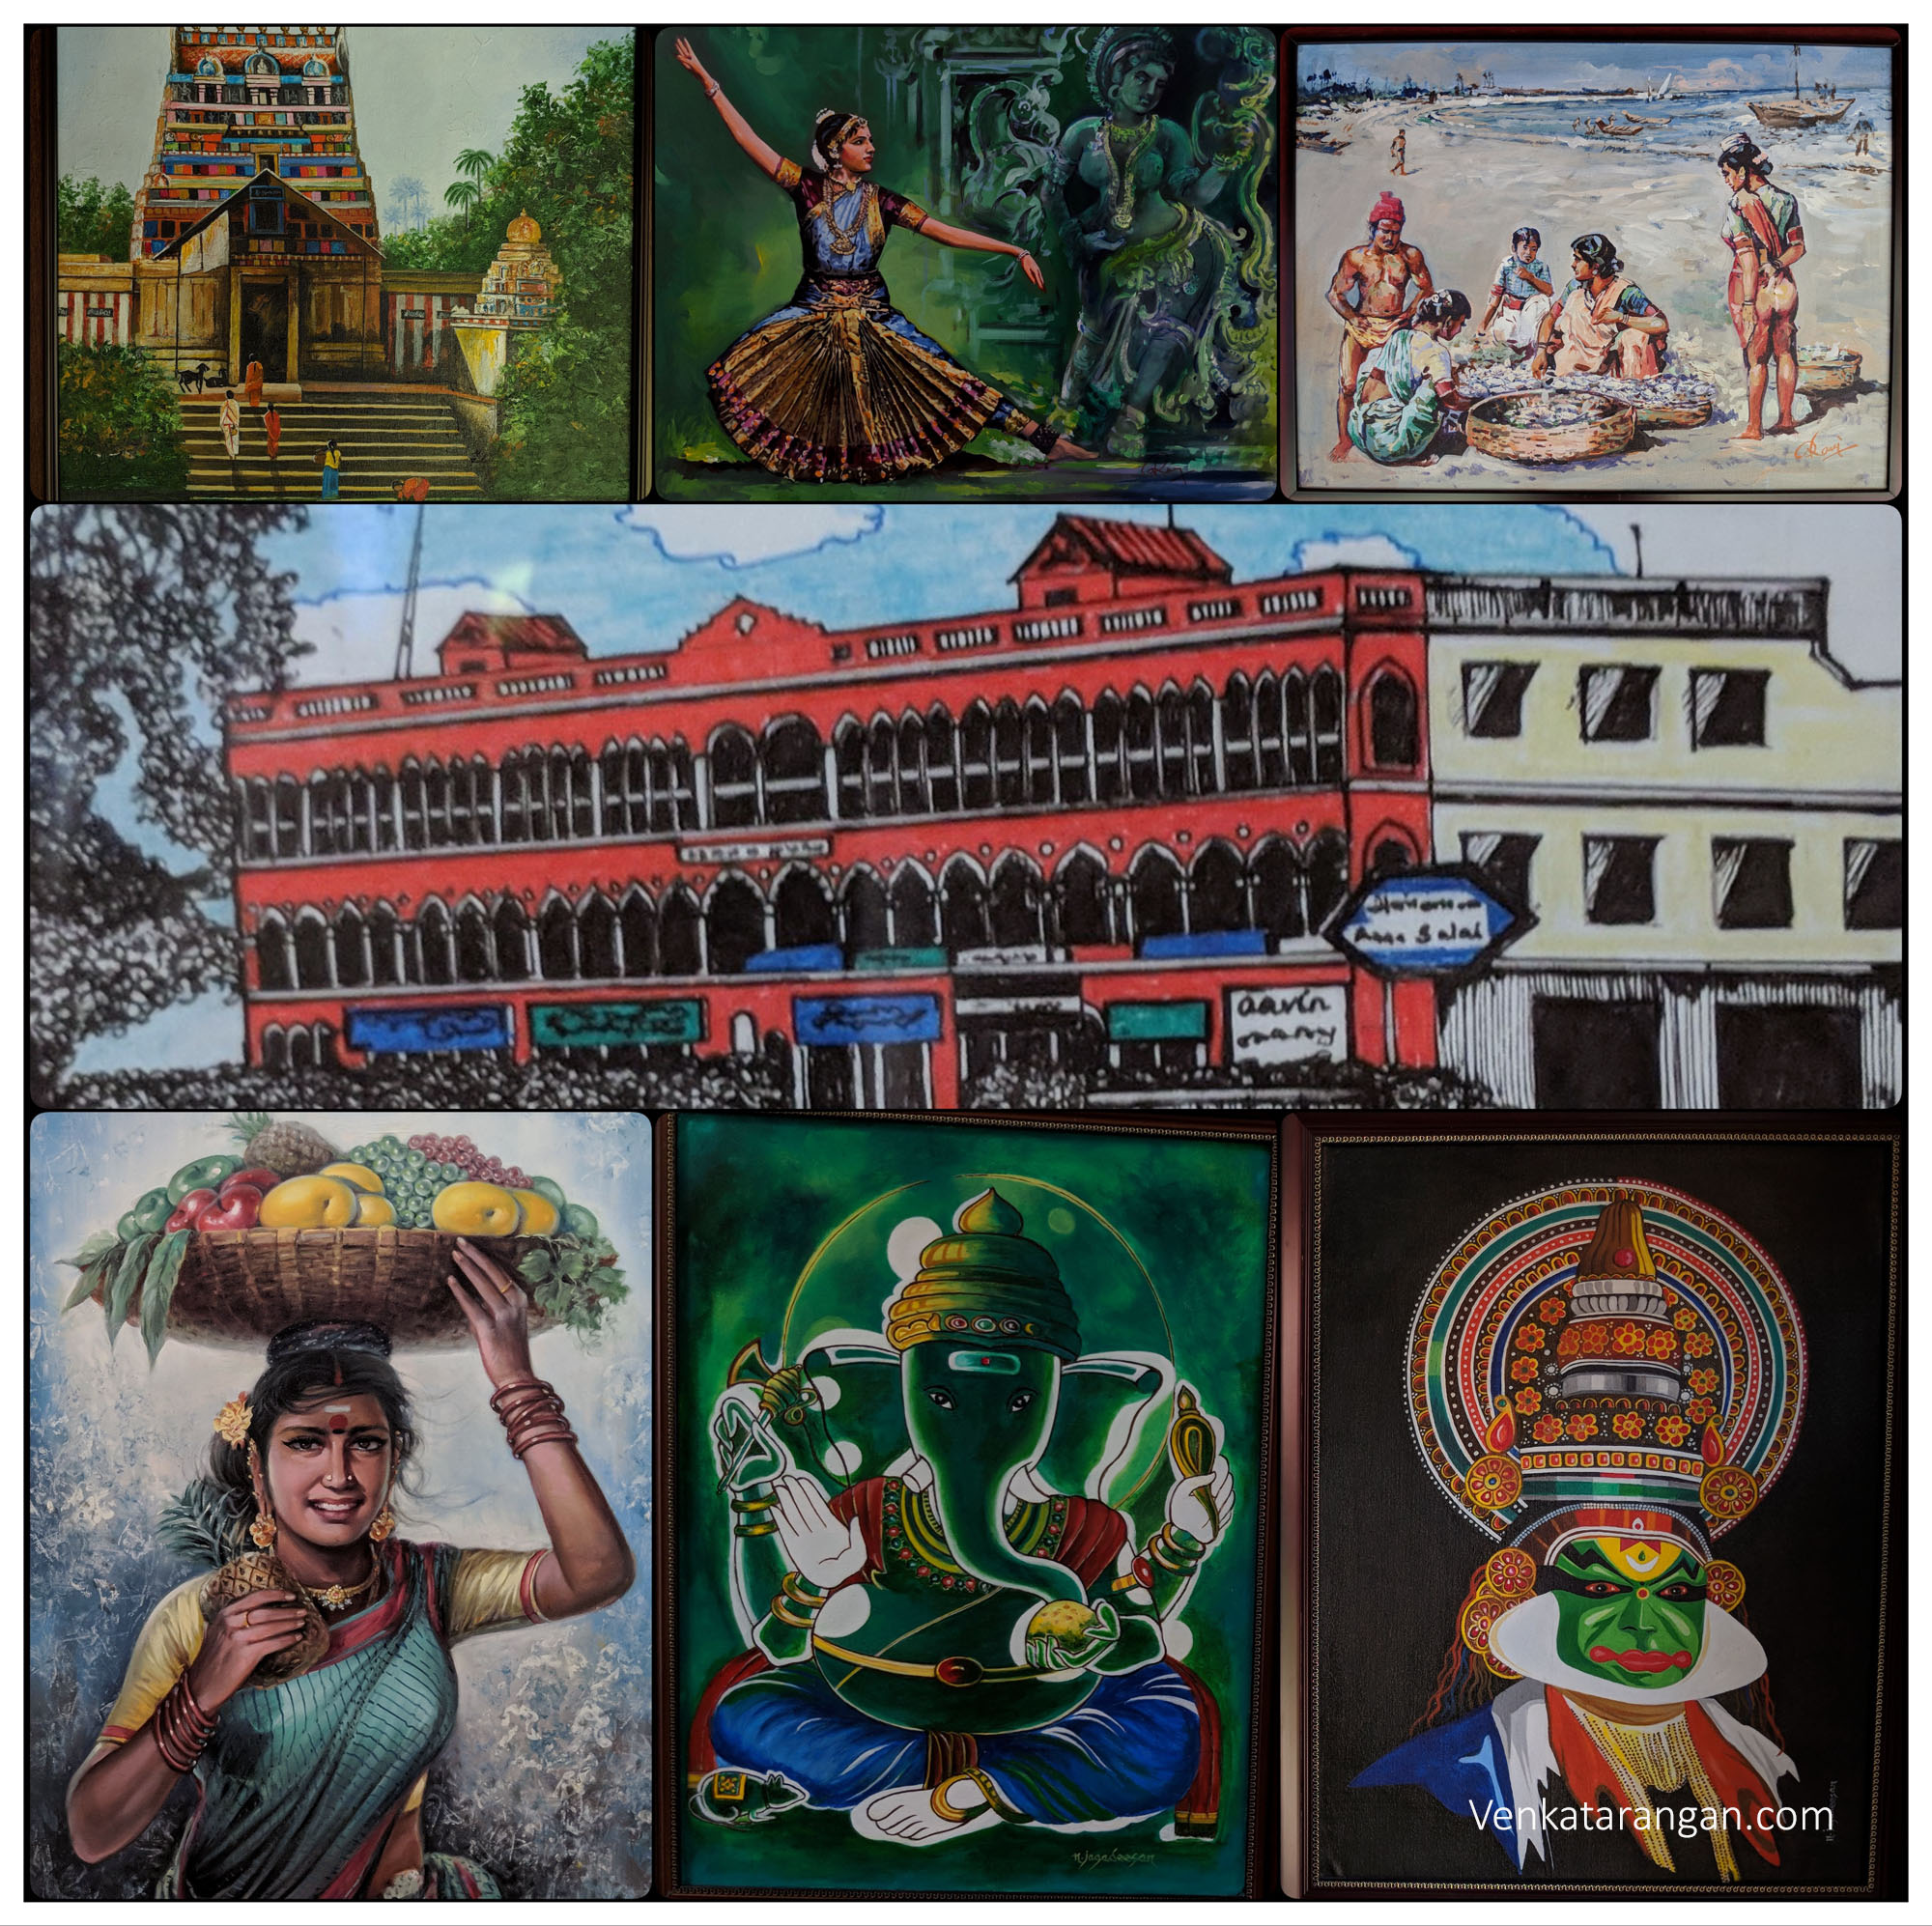 Paintings on Chennai - it's Gods, People, Life, Culture, Dance and Commerce